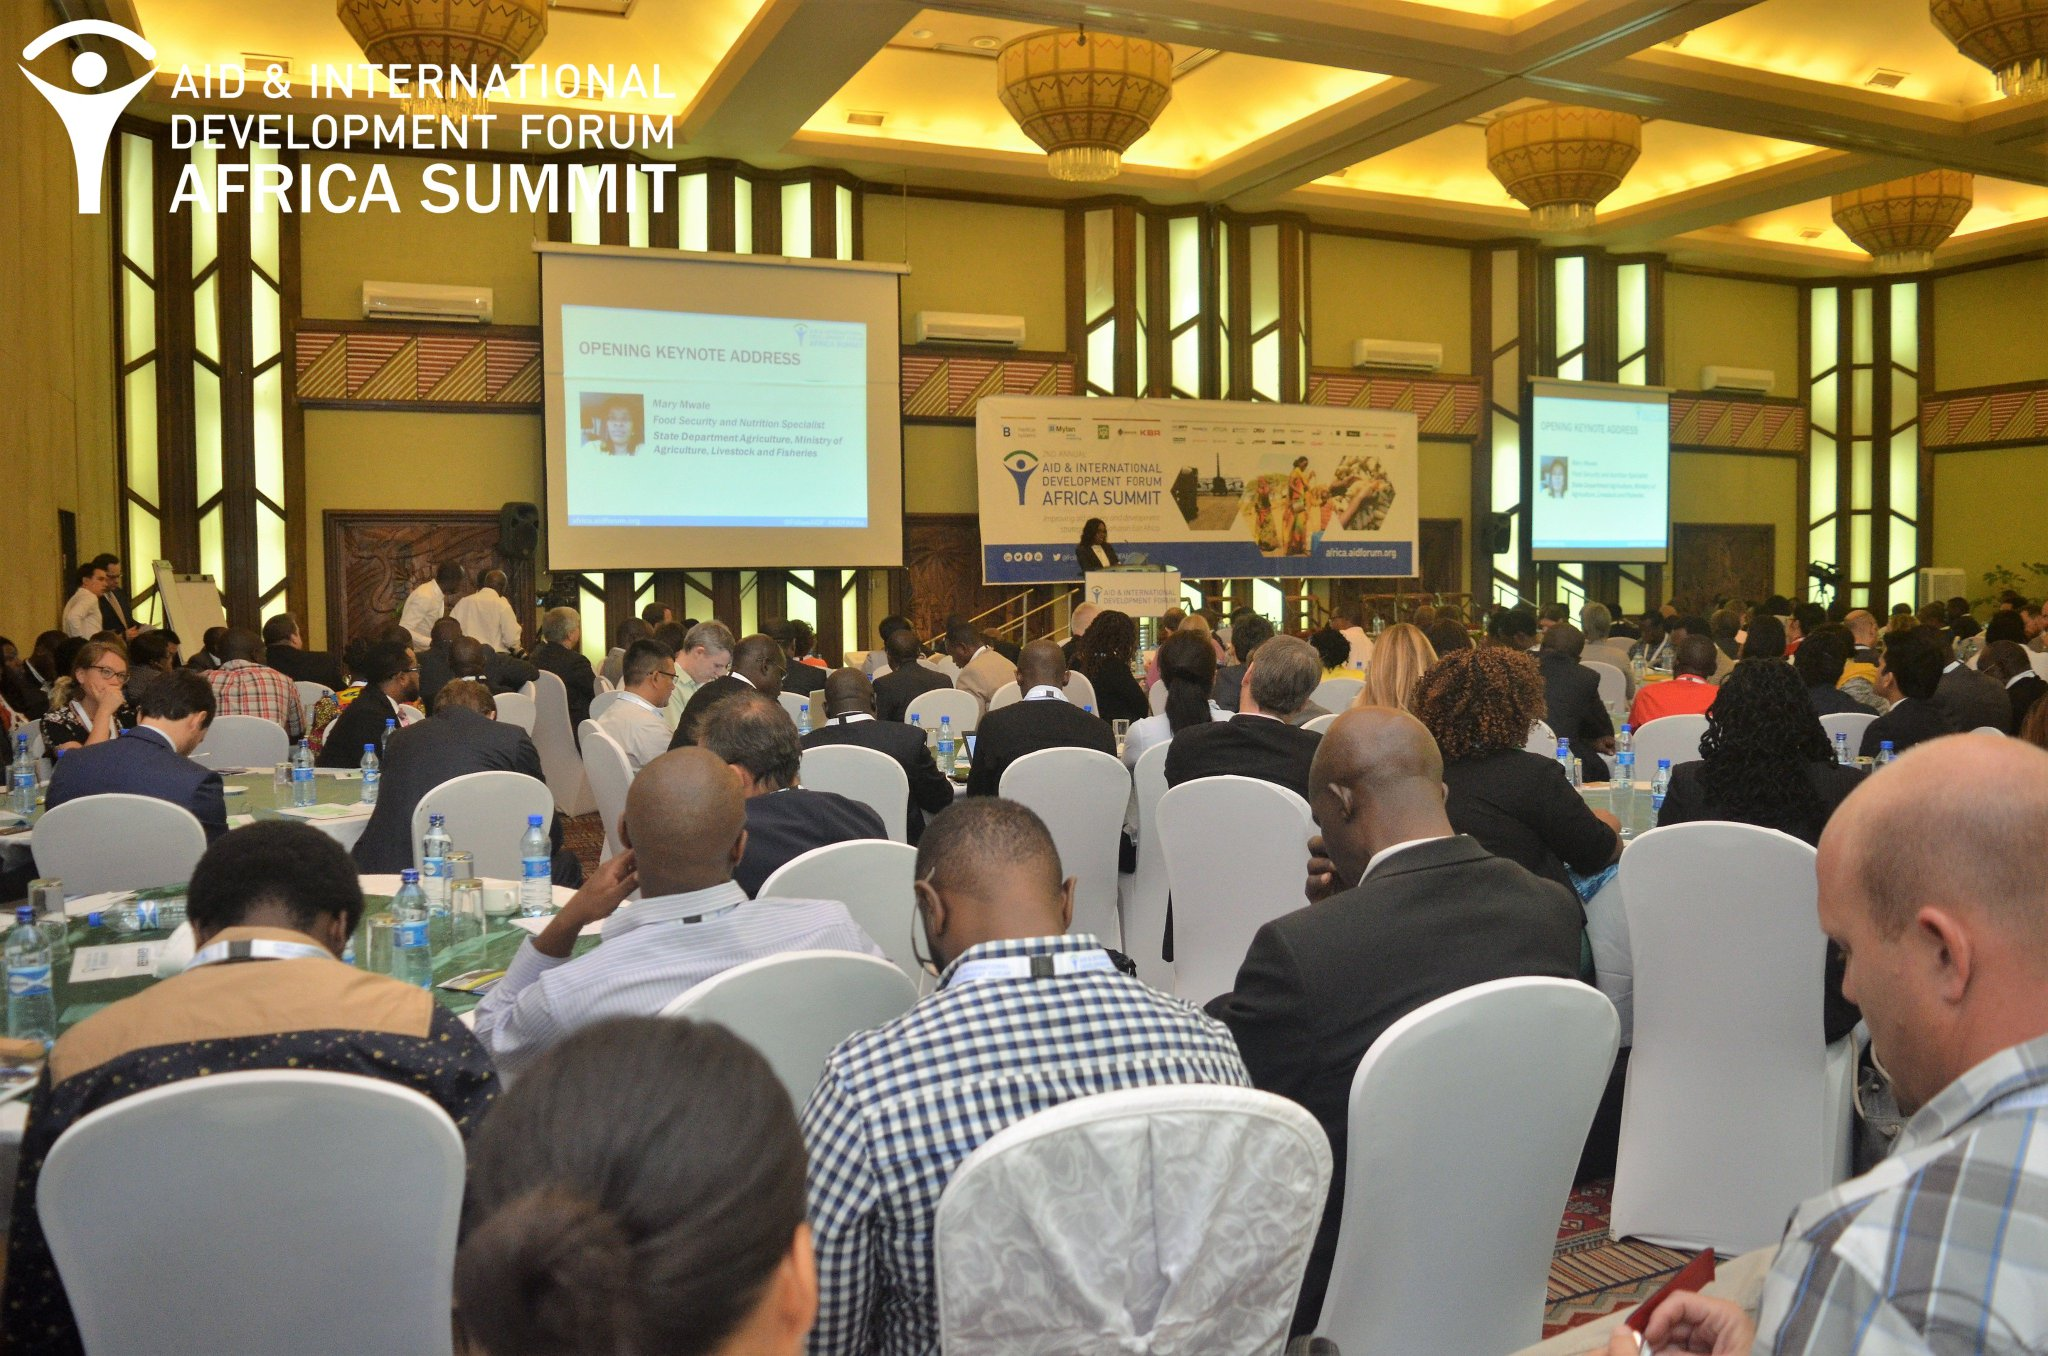 Photos from the 2nd annual Aid & Development Africa Summit in Nairobi are now published #AIDFAfrica https://t.co/z9gmQppAJk #Africa #Kenya https://t.co/k8S5OIGO1k